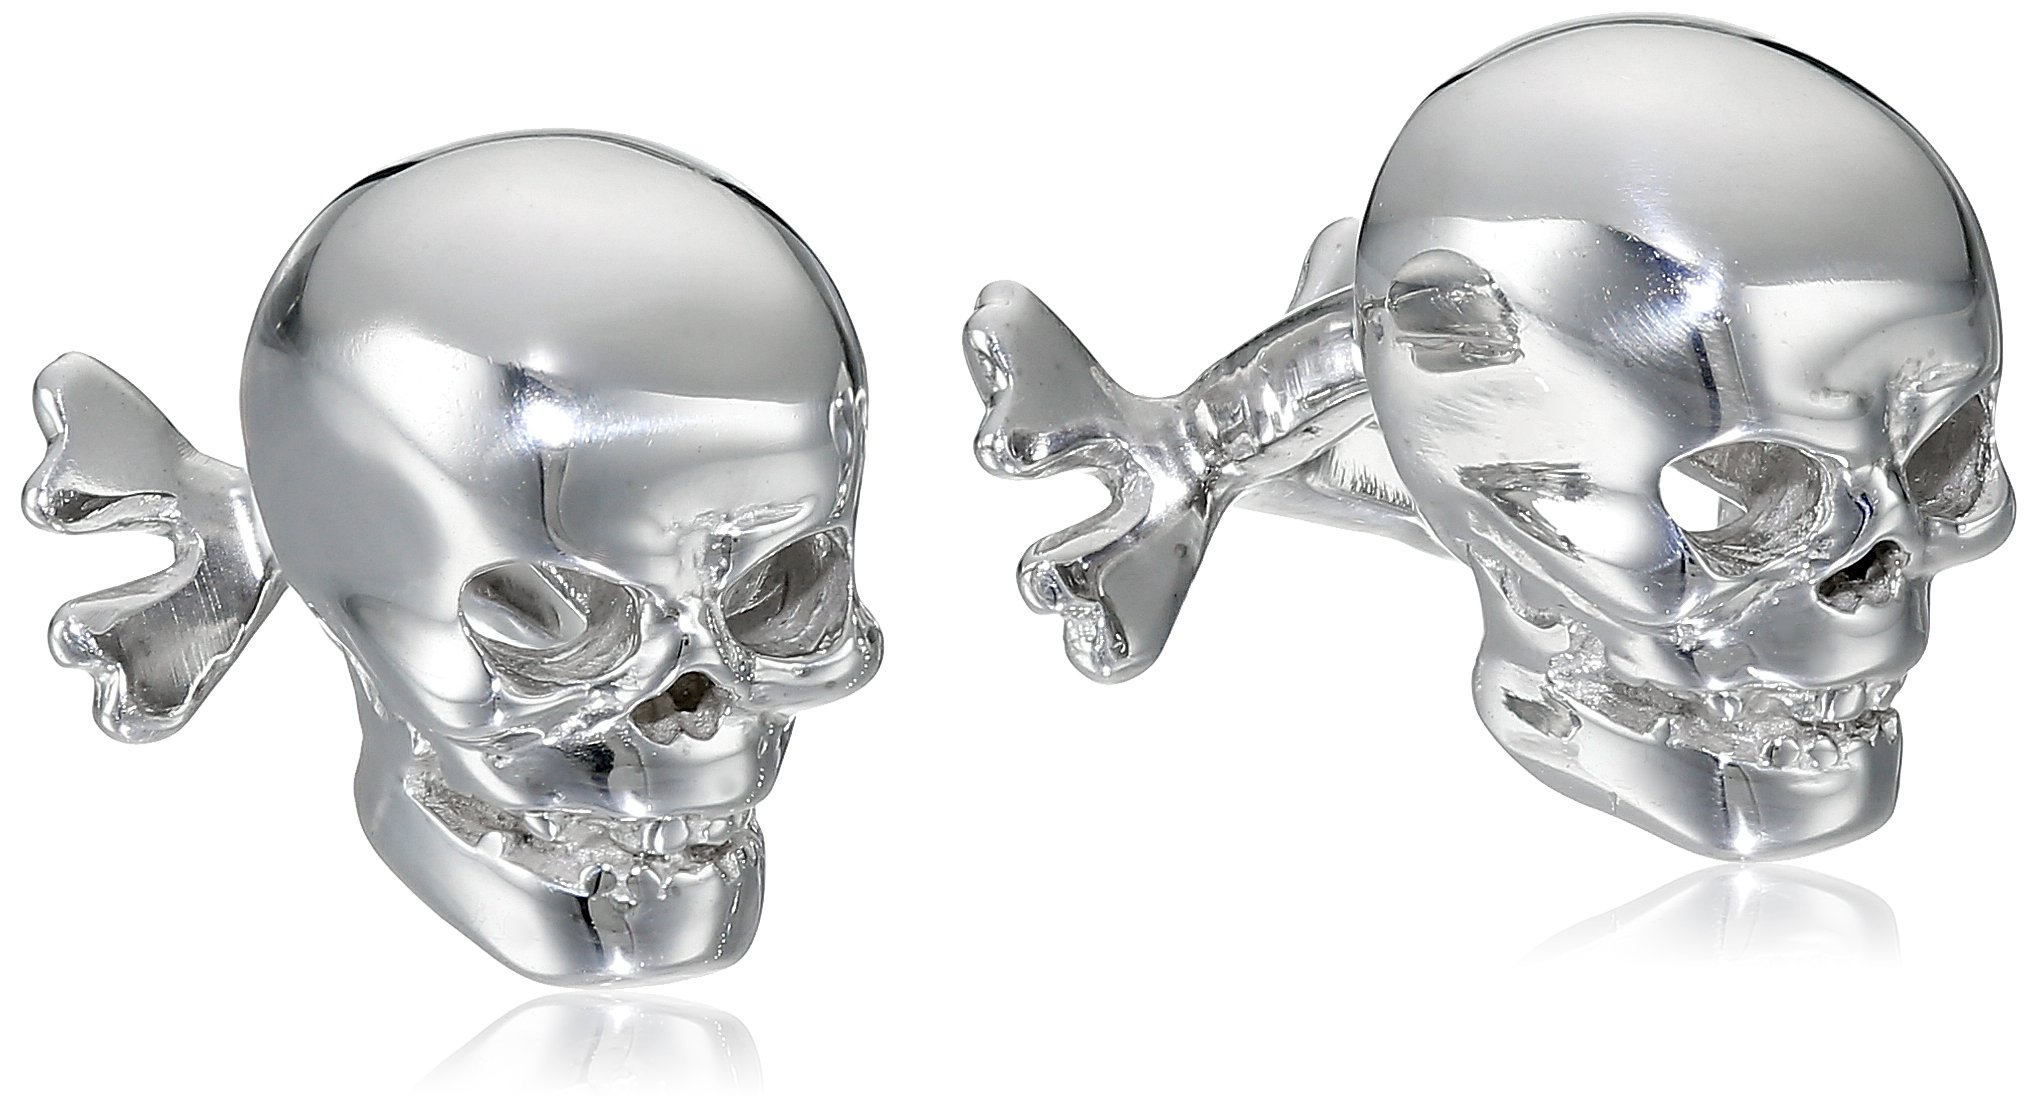 ROTENIER ''Novelty'' Sterling Silver Skull and Crossbones Cufflinks by ROTENIER